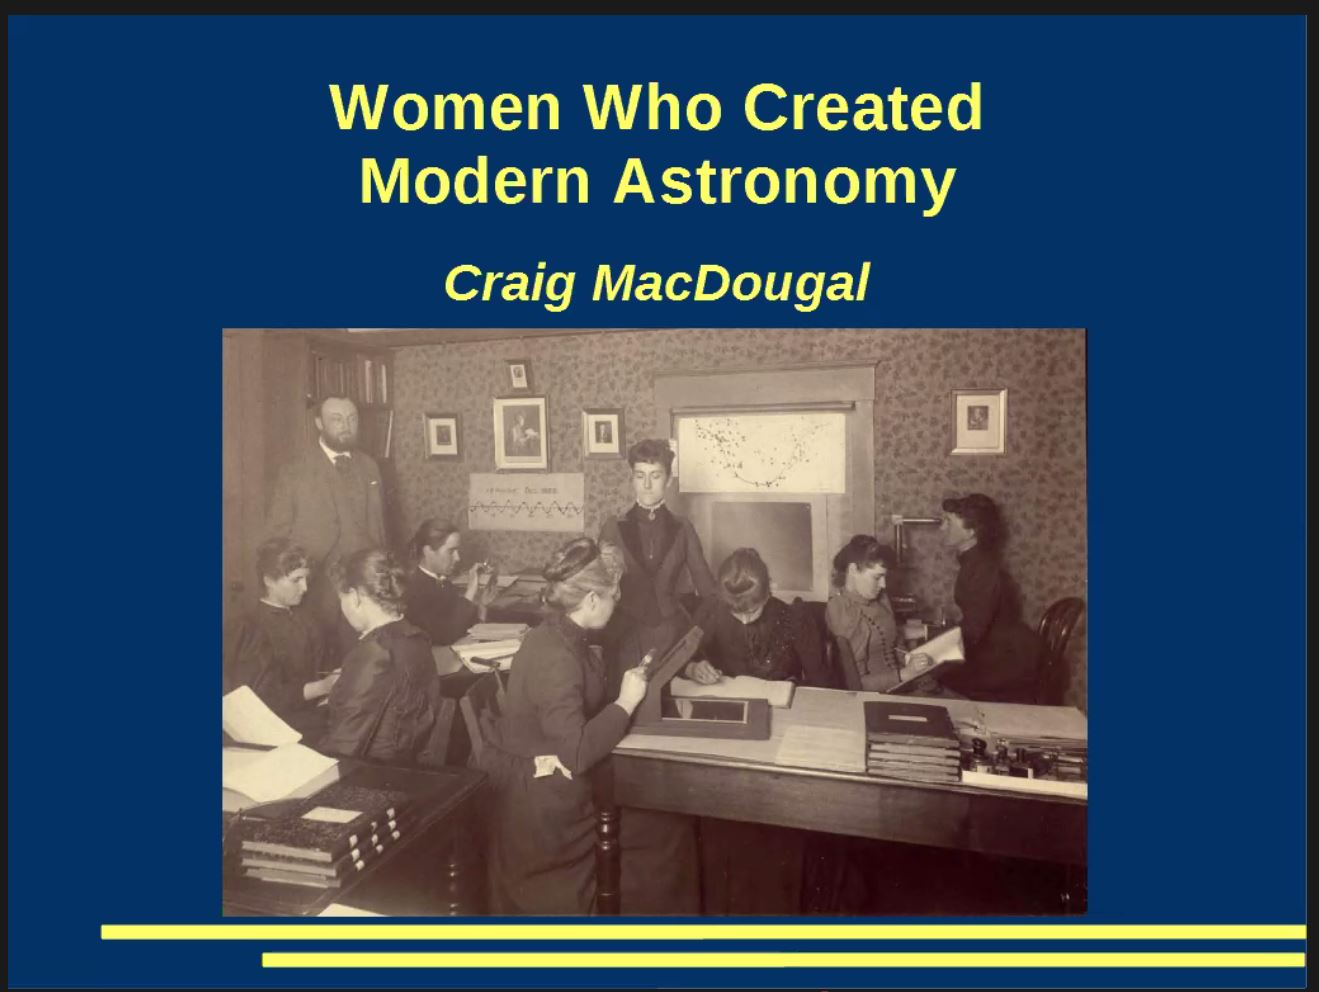 Slide from presentation shows. text states: ' Women Who Created Modern Astronomy' and below 'Craig MacDougal'. Below the inscriptions there is a black & white picture showing scientists at work.